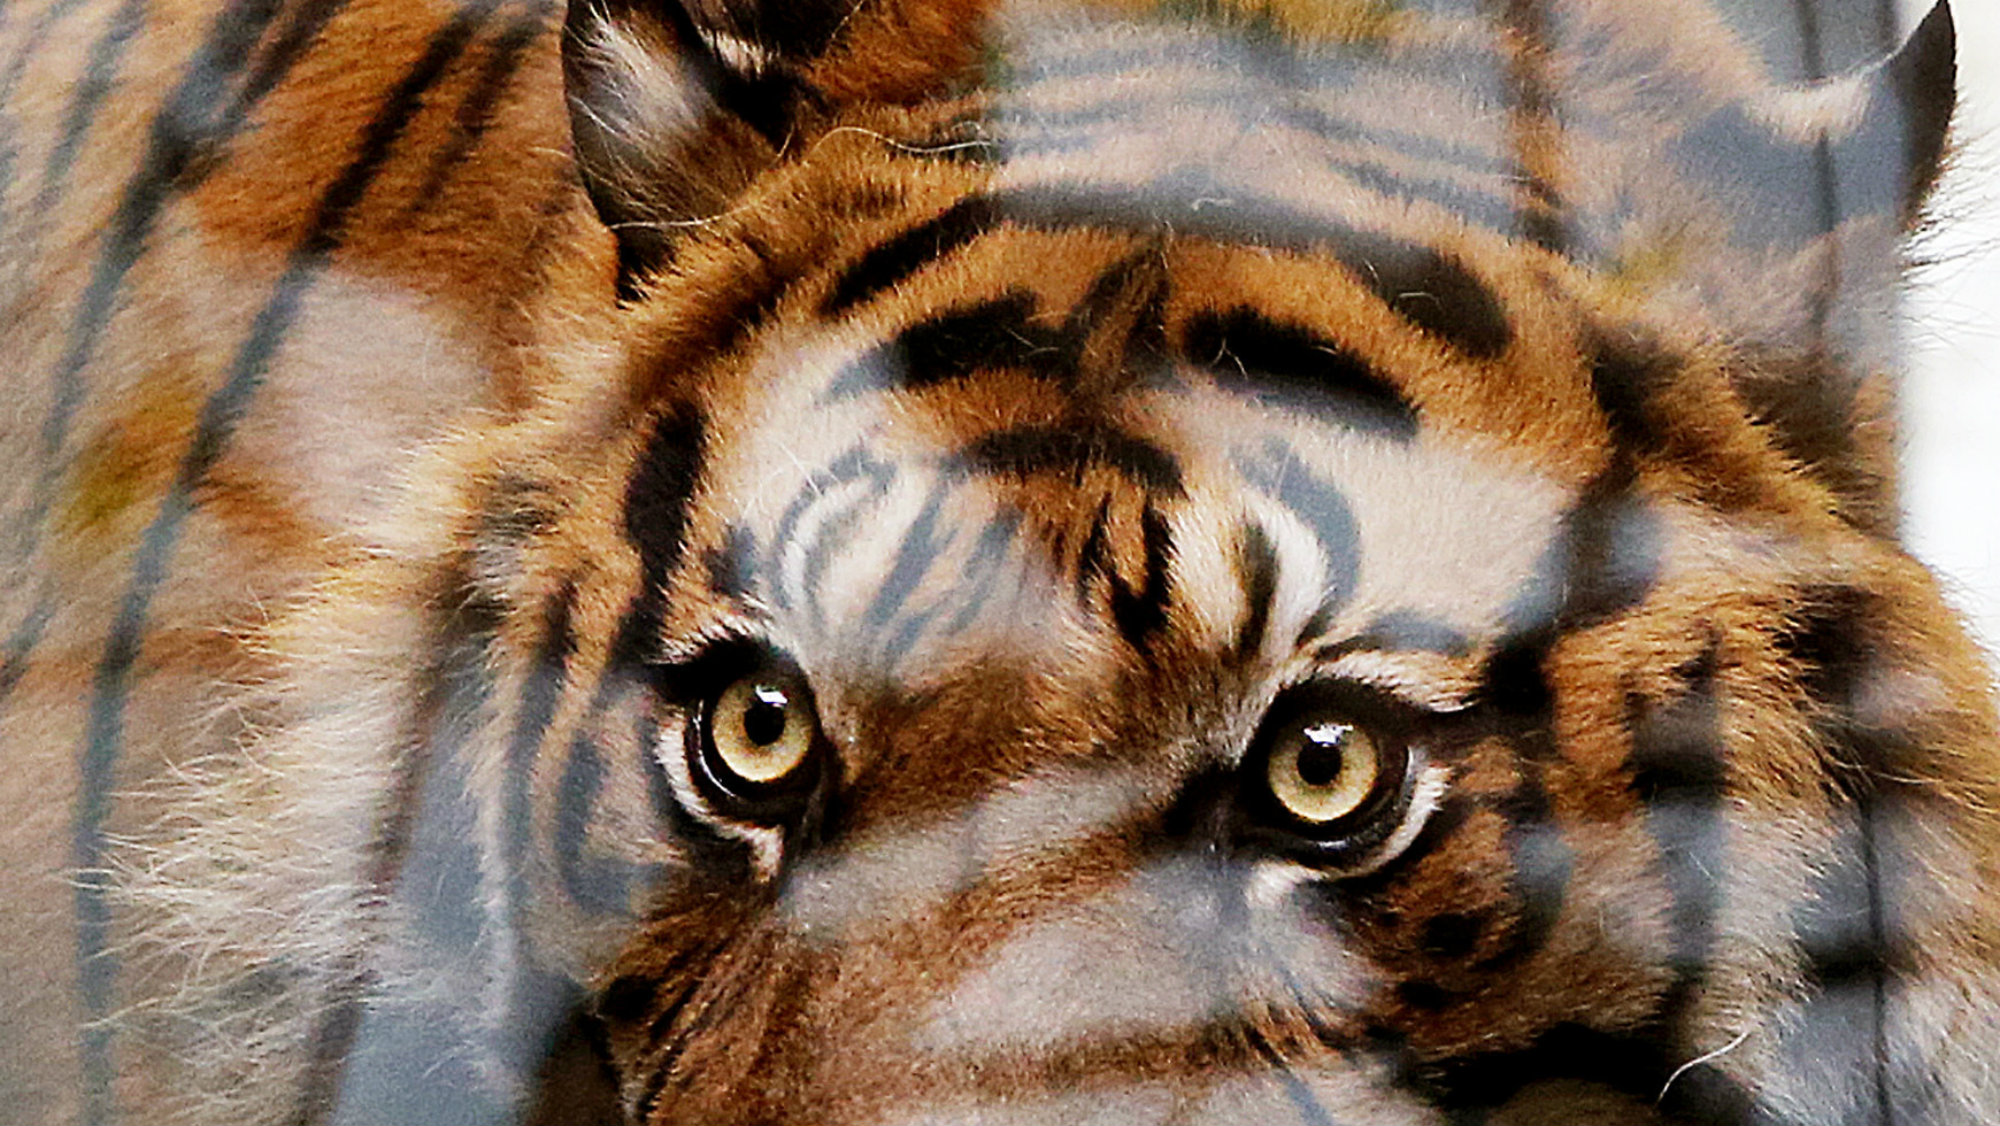 Male Sumatra tiger Vanni is photographed through a reflecting window as it checks out its new enclosere in the zoo in Frankfurt, Germany, on its first public appearance Wednesday, March 1, 2017.